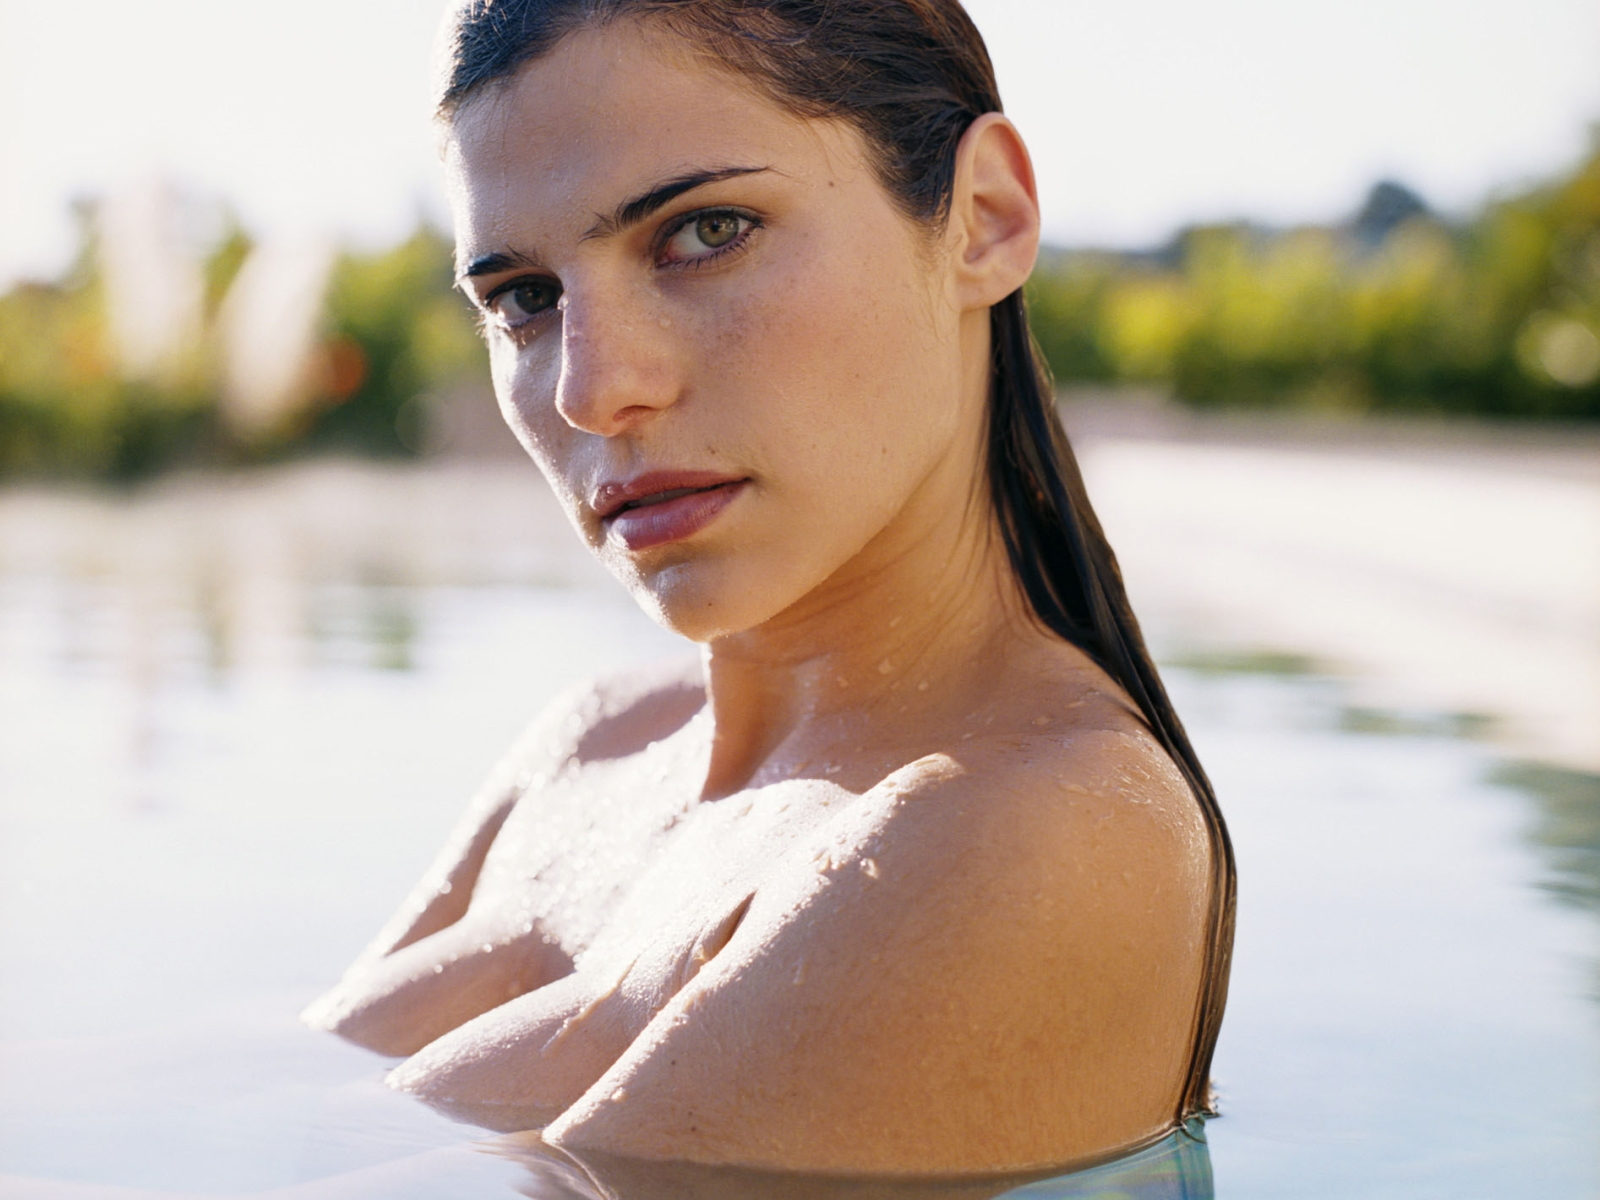 Android 3d Live Wallpaper Creator Download Lake Bell Wallpapers Gallery